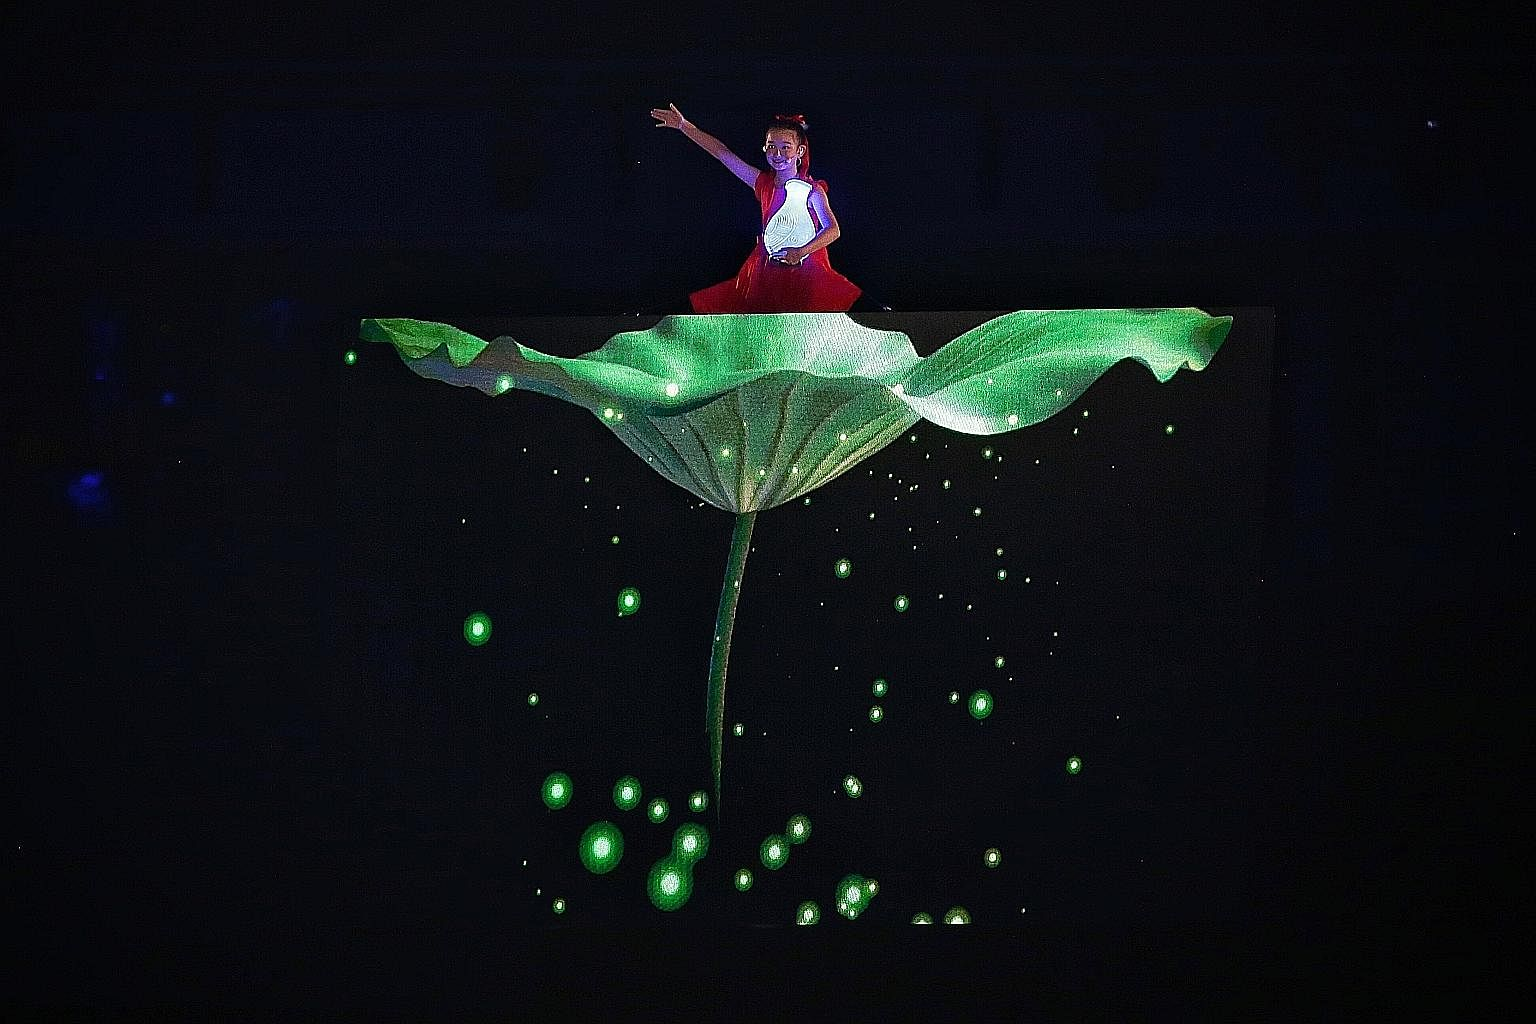 A young performer rises above the crowd with the announcement of Hangzhou as the host of the 2022 Asian Games during the closing ceremony of the 18th Asian Games in Jakarta. Thousands of athletes in ponchos marched in heavy rain at Gelora Bung Karno